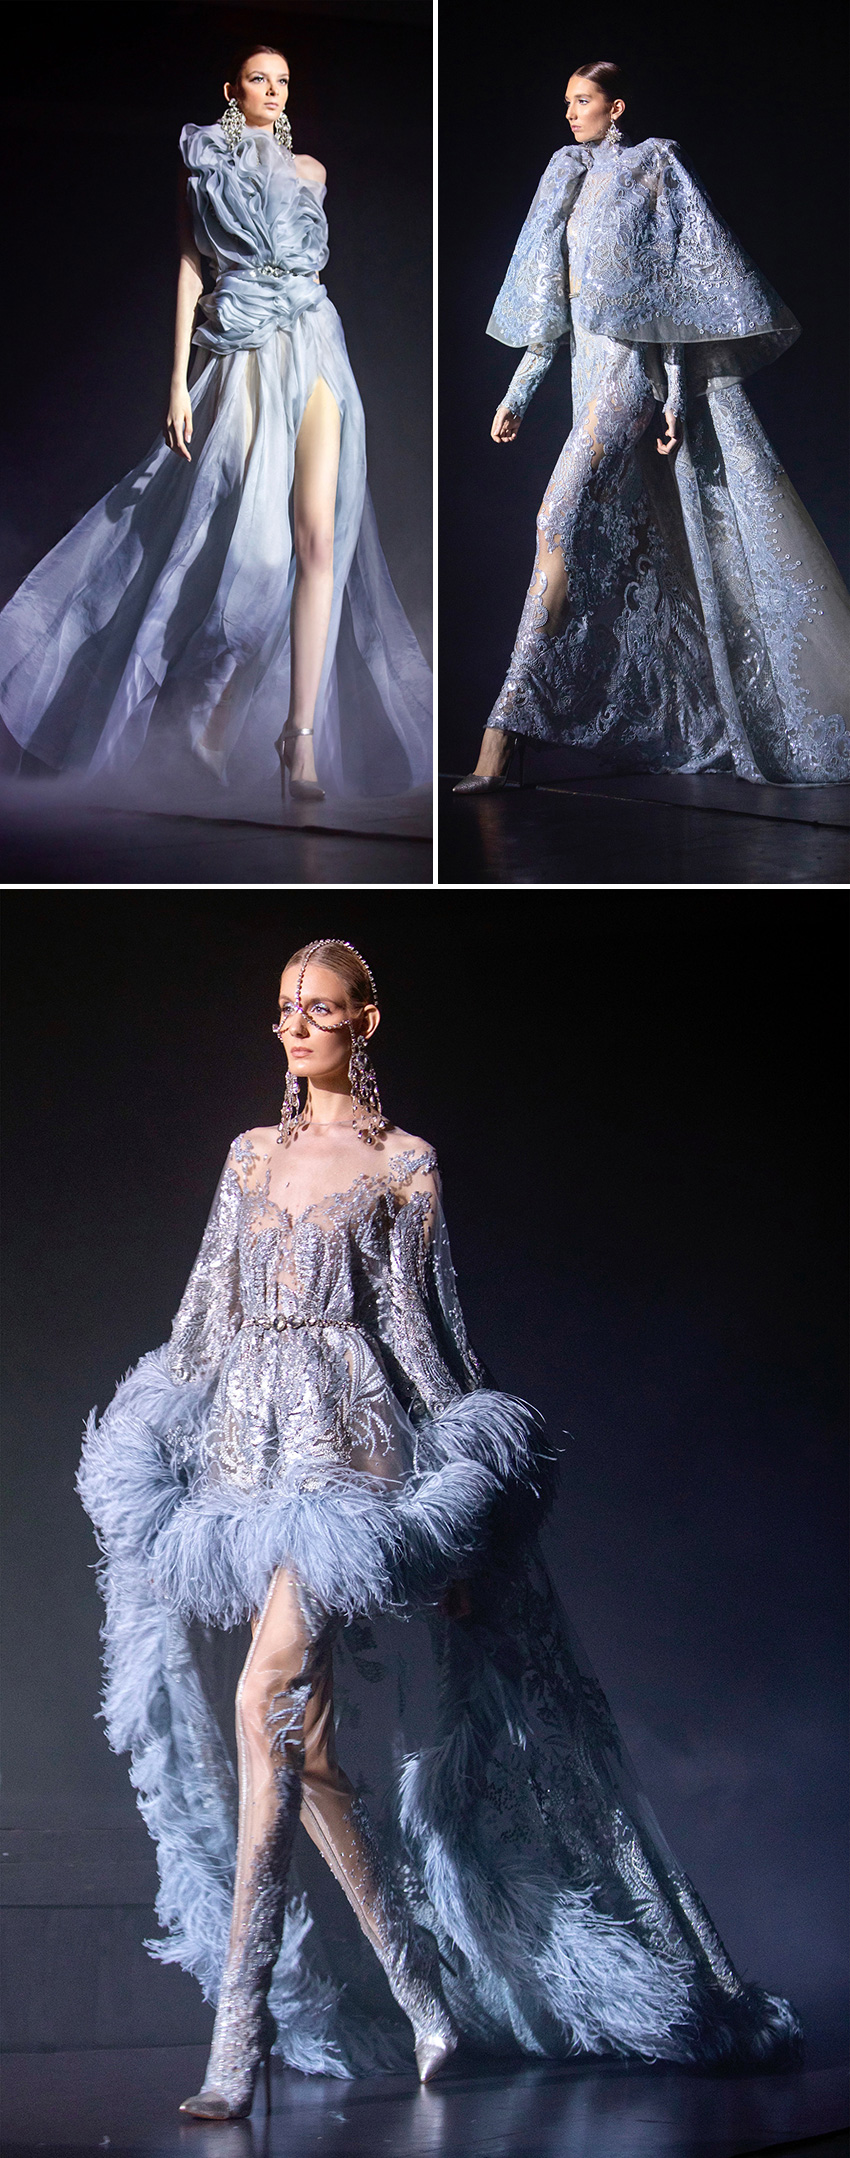 Elie Saab haute Couture Spring Summer 2021 include dresses in silver silk chiffon featured in Perfect Wedding Magazine